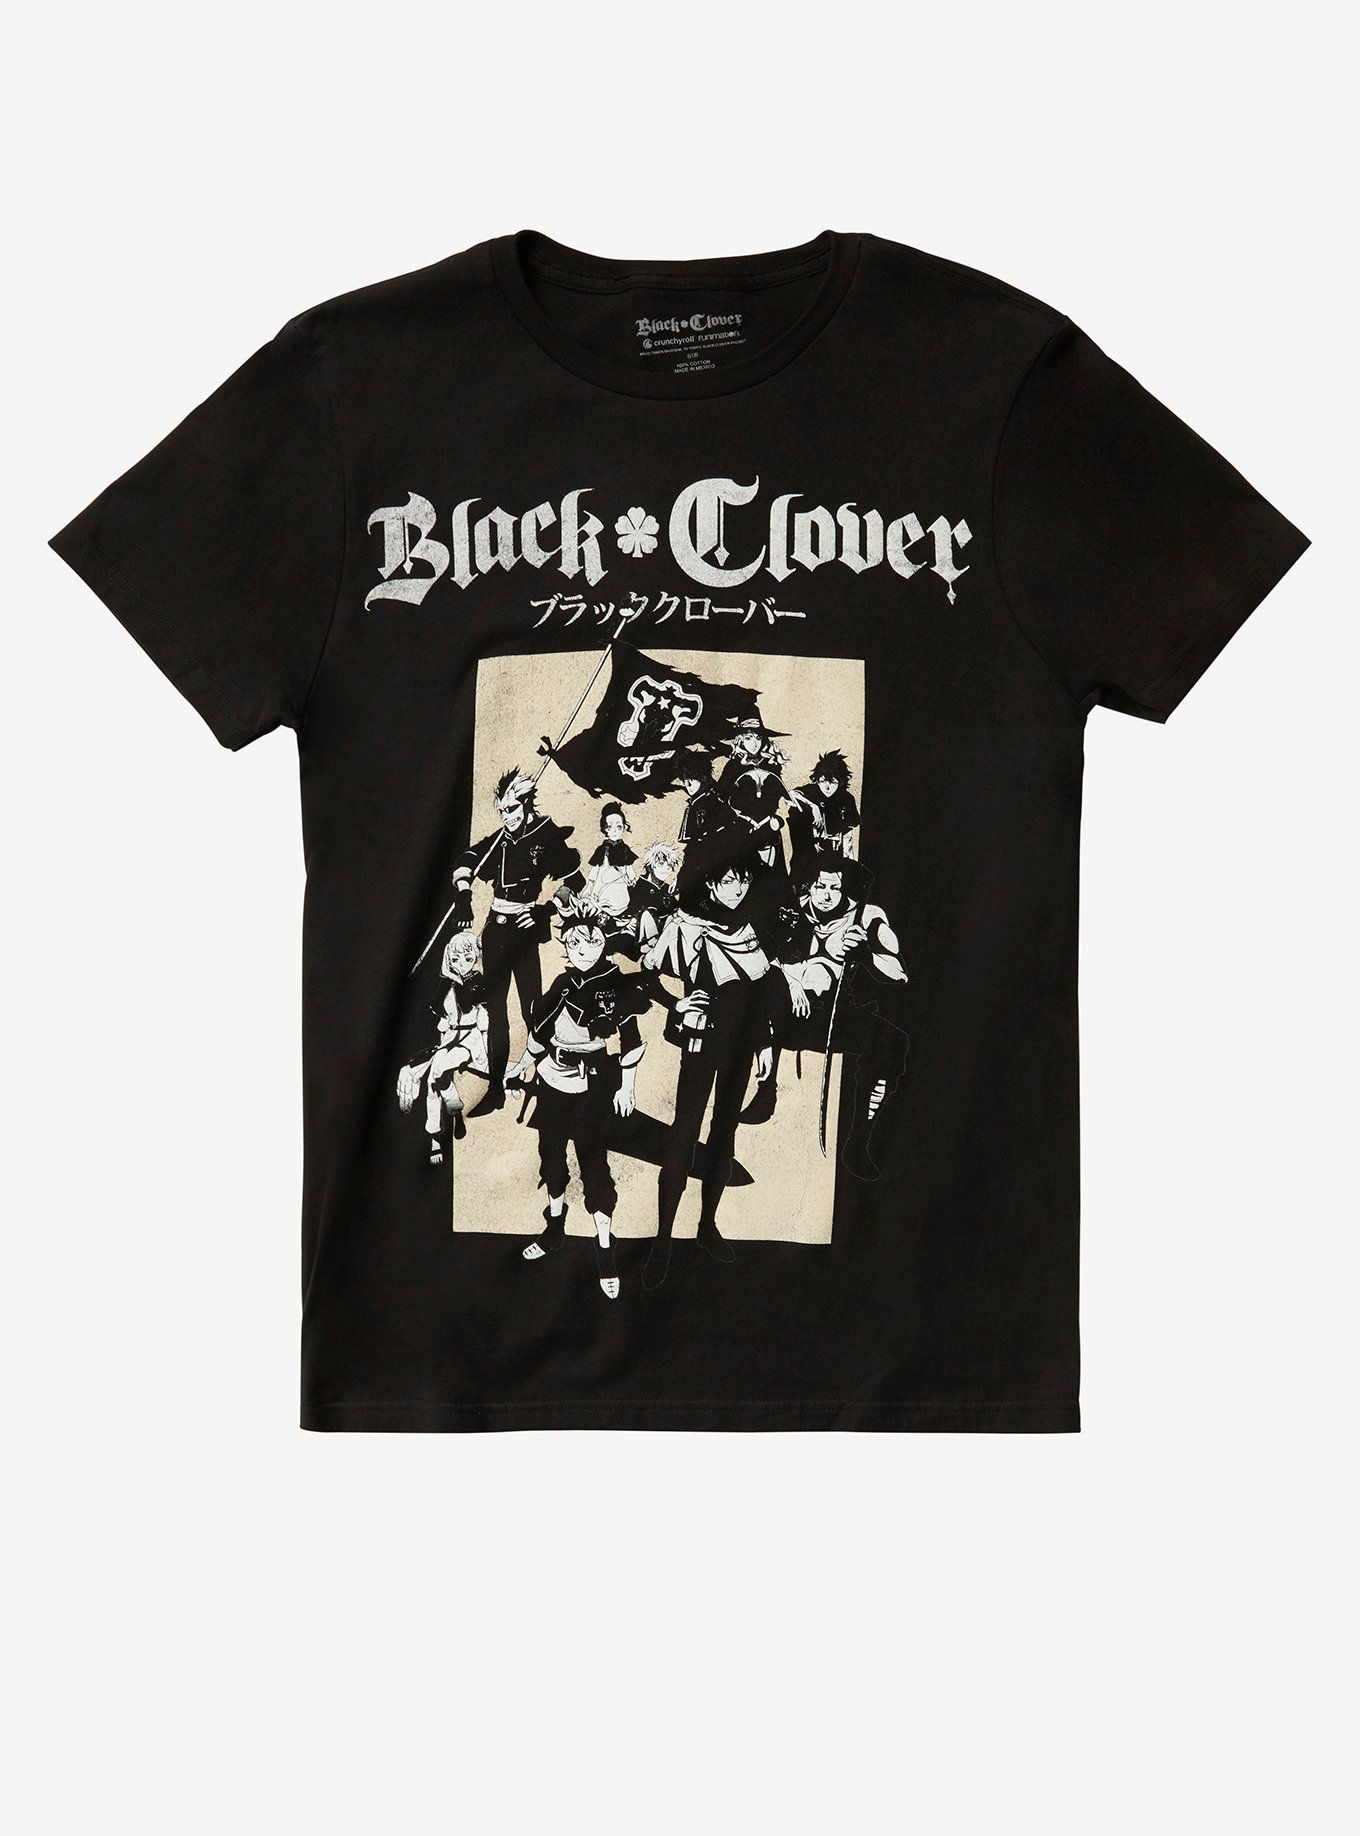 Black clover group tshirt hot topic exclusive clover